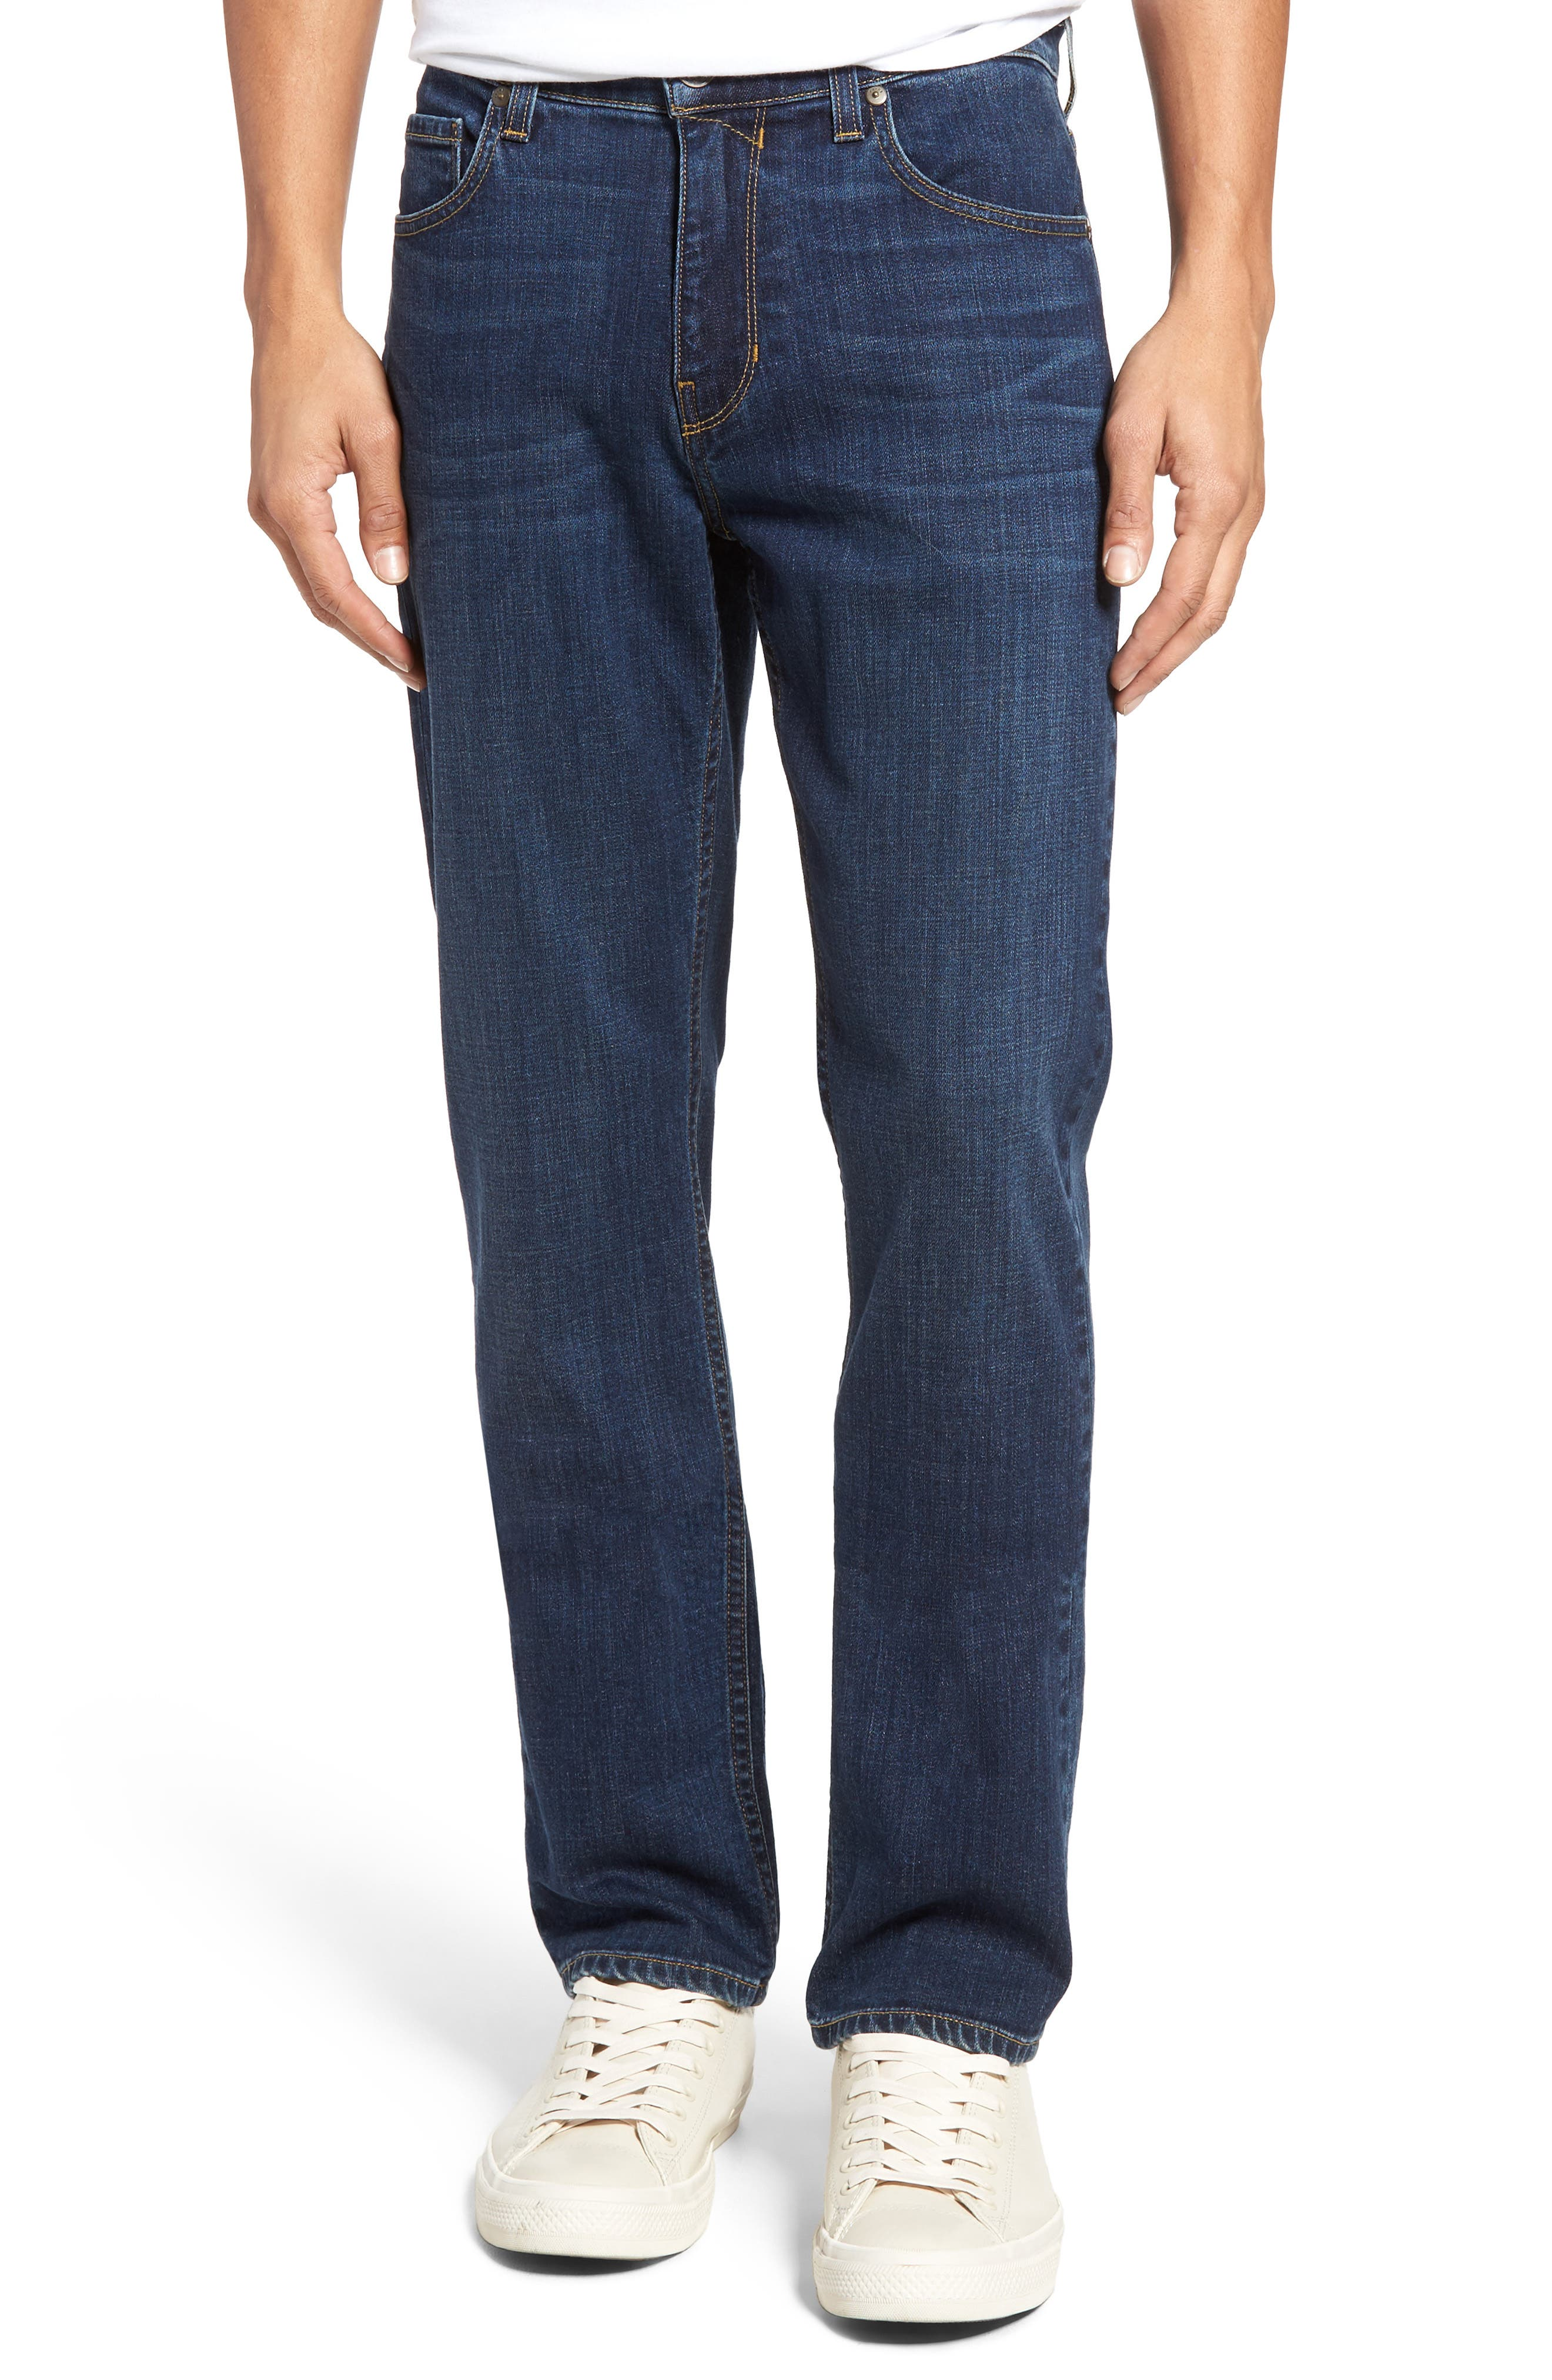 Normandie Straight Leg Jeans,                         Main,                         color, ANGELO